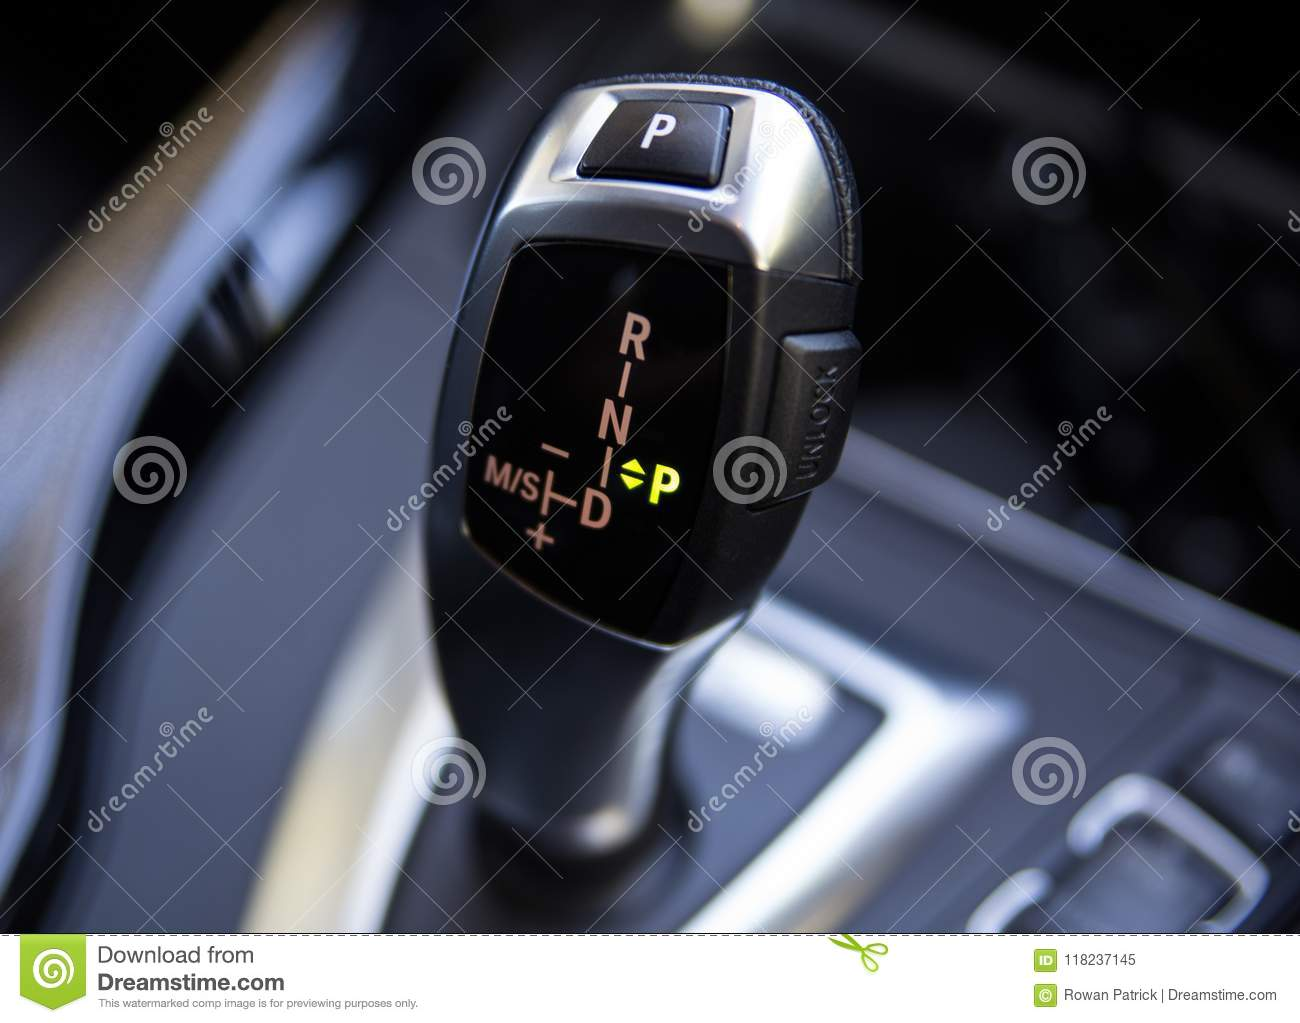 Bmw Car Gear Shift Stick Automatic Editorial Image - Image of gear